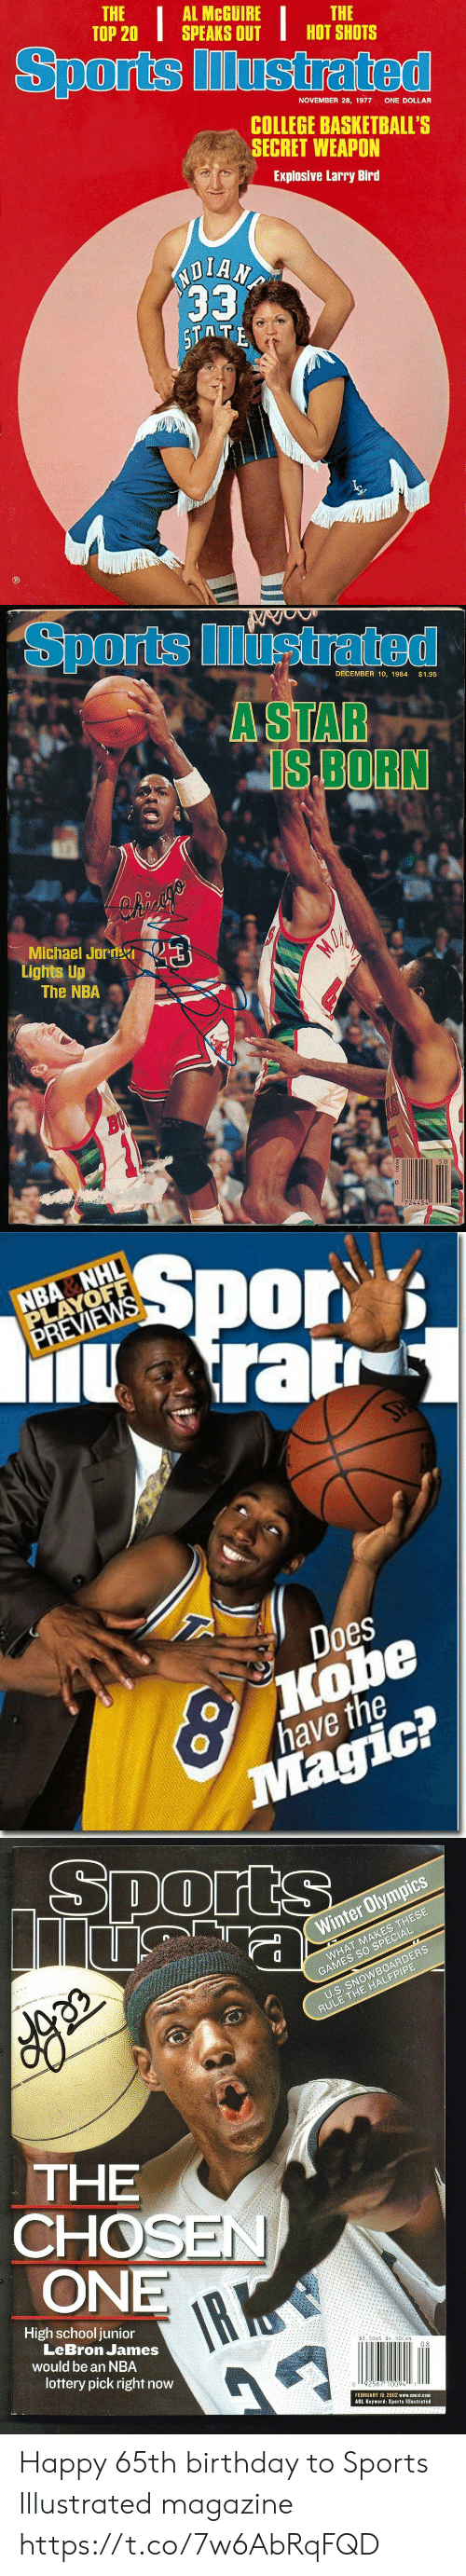 National Hockey League (NHL): THE  ТОР 20  AL MCGUIRE  SPEAKS OUT  THE  HOT SHOTS  Sports Illustrated  NOVEMBER 28, 1977  ONE DOLLAR  COLLEGE BASKETBALL'S  SECRET WEAPON  Explosive Larry Bird  ND  33  5TTE   Sports ustrated  DECEMBER 10, 1984  $1.95  A STAR  IS BORN  3  Michael JordRI  Lights Up  The NBA  BU  724454   NBA NHL  PLAYOFF  PREVIEWS  Spor  Arar  SPA  Does  Kobe  have the  Magic?   Sports  Winter Olympics  WHAT MAKES THESE  GAMES SO SPECIAL  U.S. SNOWBOARDERS  RULE THE HALFPIPE  THE  CHOSEN  ONE  IR K  High school junior  LeBron James  would be an NBA  $3.50US $4.50CAN  lottery pick right now  08  92567 10094  FEBRUARY 18, 2002 www.cnnsi.com  AOL Keyword: Sports lllustrated Happy 65th birthday to Sports Illustrated magazine https://t.co/7w6AbRqFQD